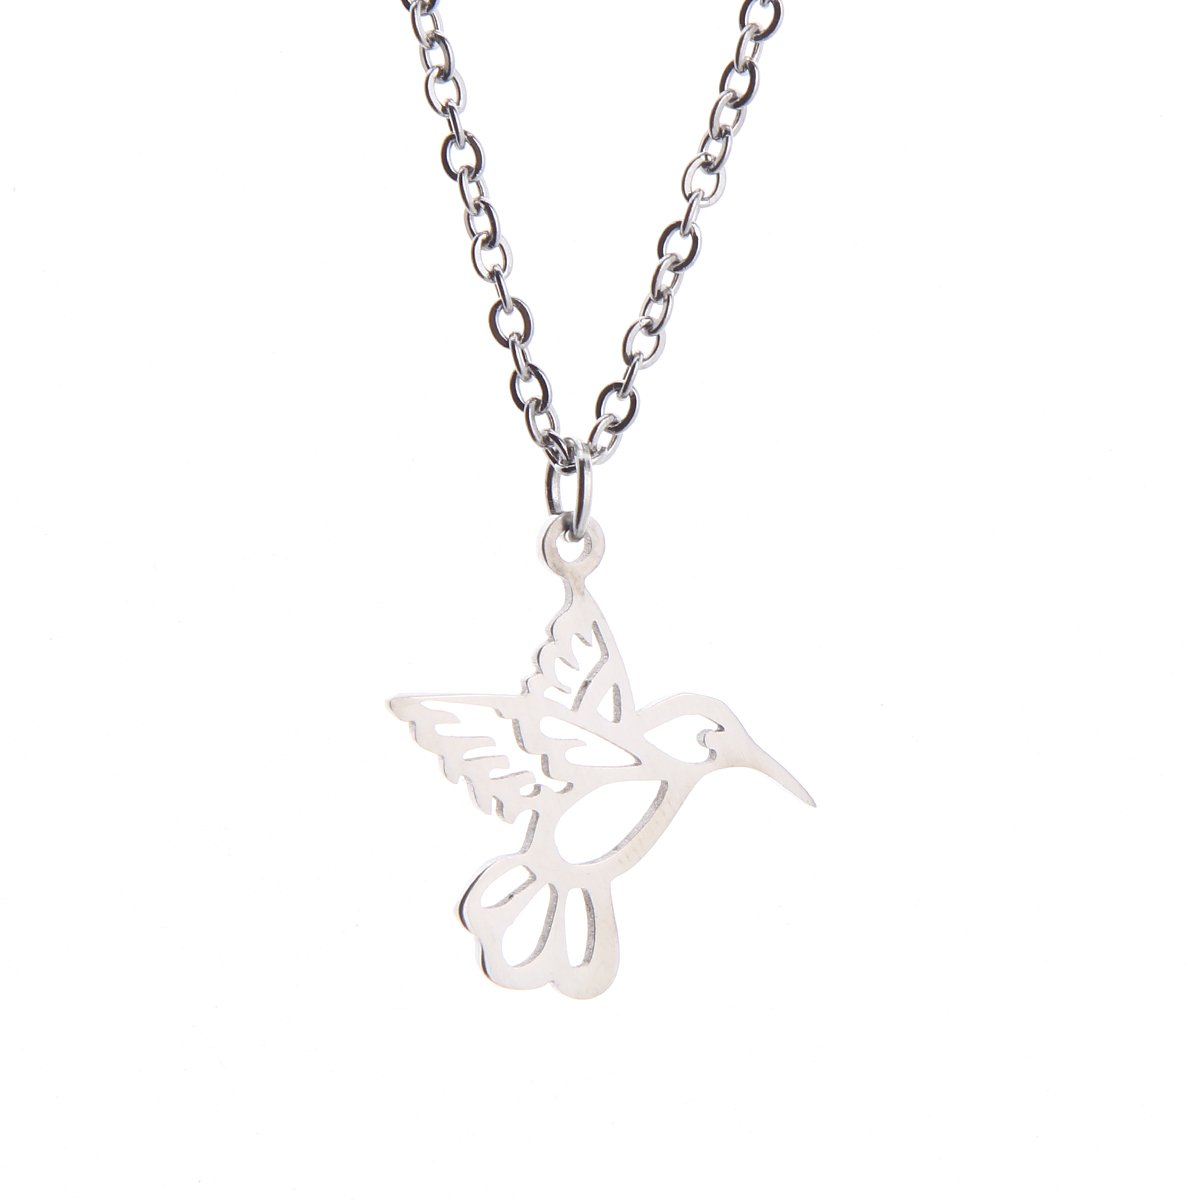 Tiny Minimalist Silver Yoga Geometric Hummingbird Necklace Amazon